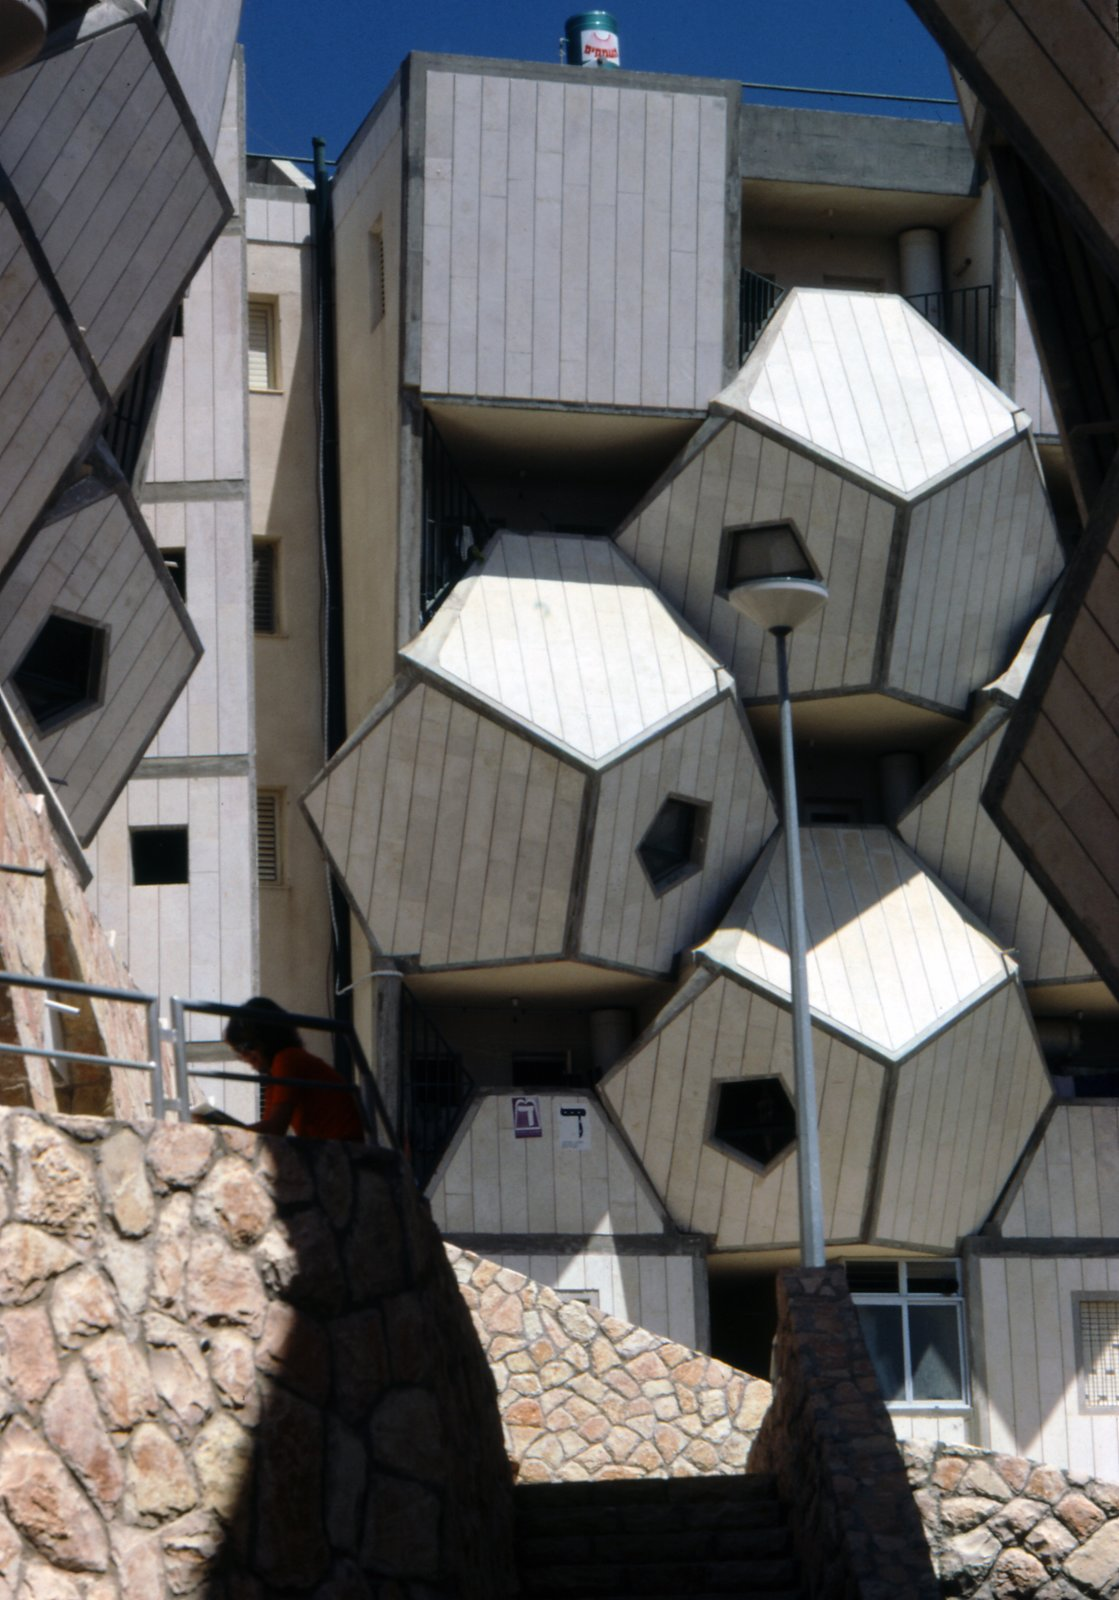 Hecker also argues that the structure's form helps it to adapt to hilly and irregular terrain. Photo by Zvi Hecker.  Geometric Housing Complex in Jerusalem  by Diana Budds